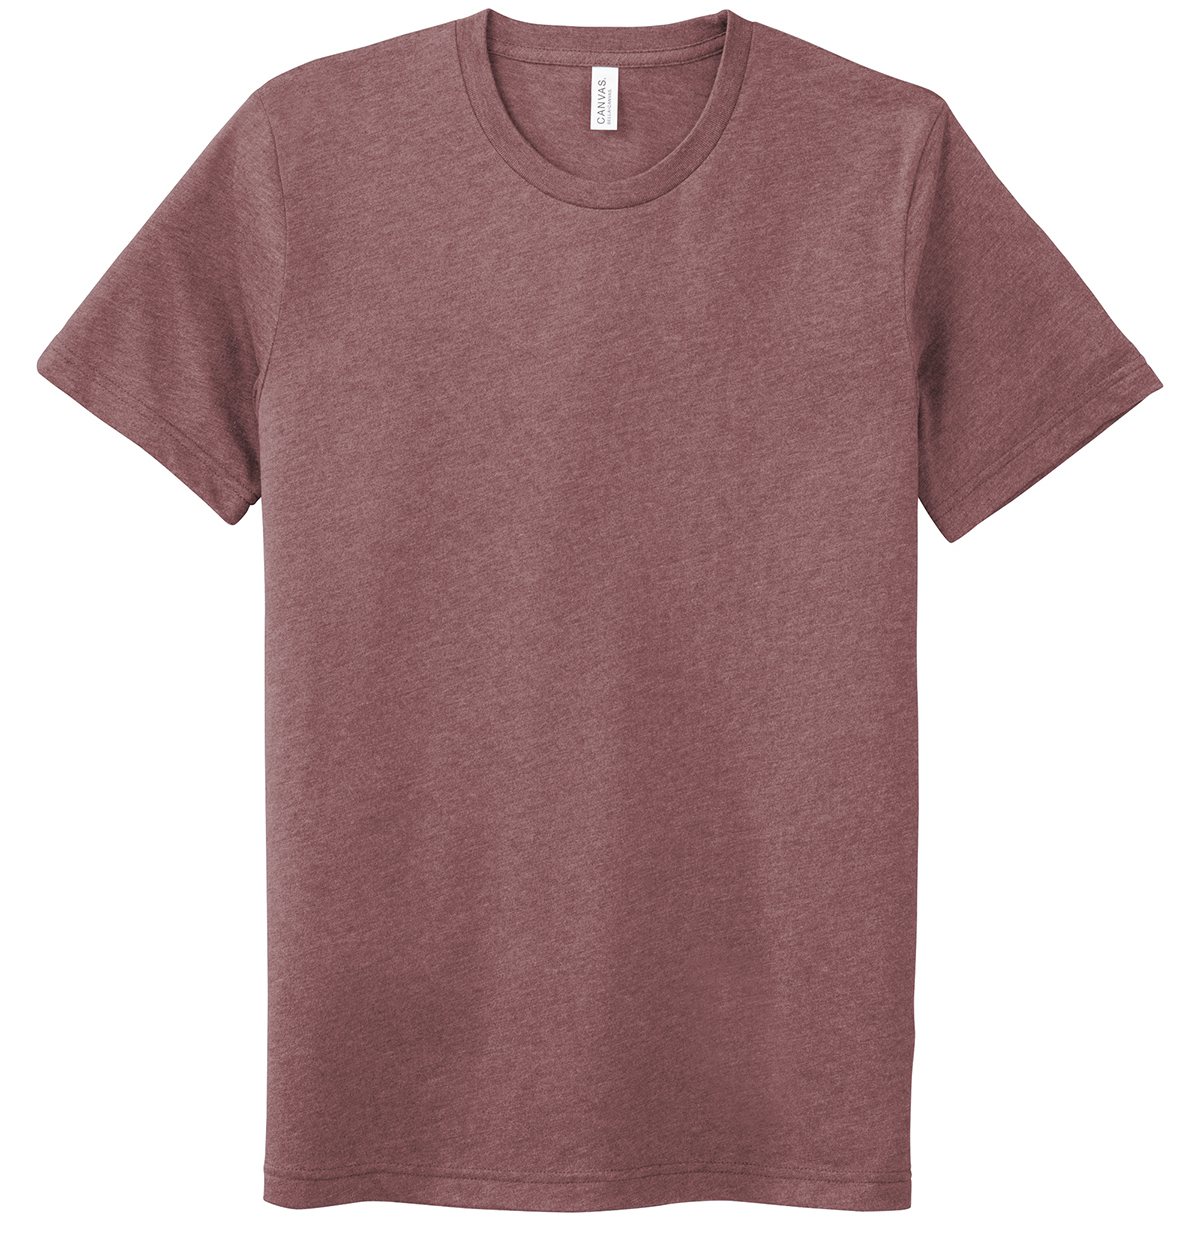 Port & Company Essential Tee (Lime) is a heavyweight T-shirt that is budget-friendly